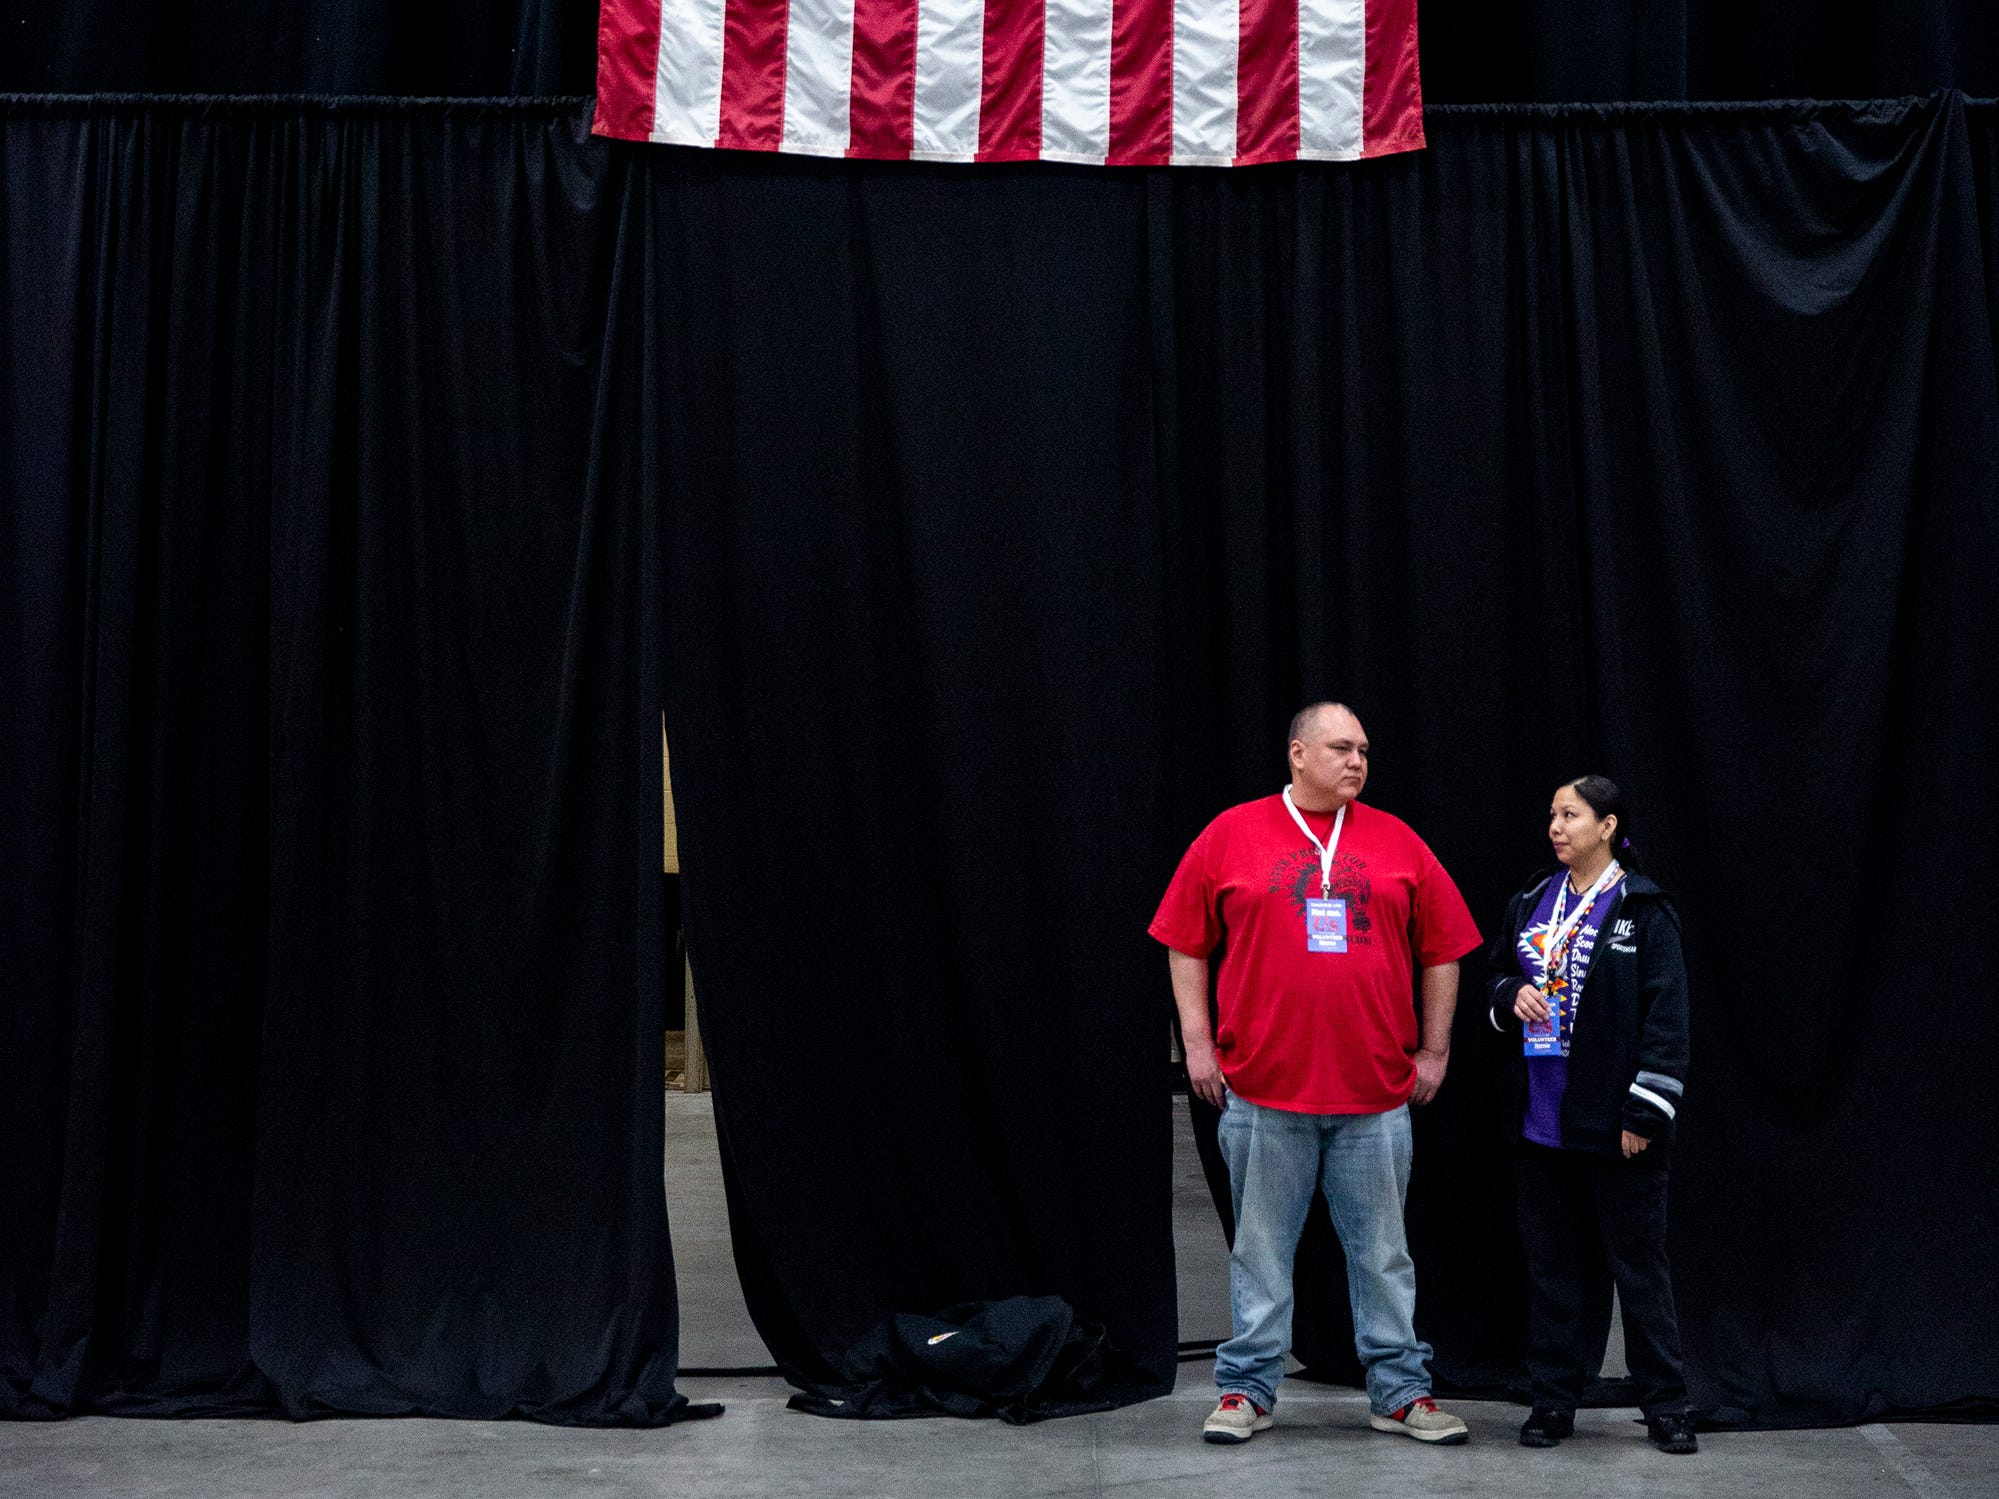 Two volunteers stand under an American flag hung in the Mid-America Center for a rally with Sen. Bernie Sanders, I-VT, on Thursday, March 7, 2019, in Council Bluffs.